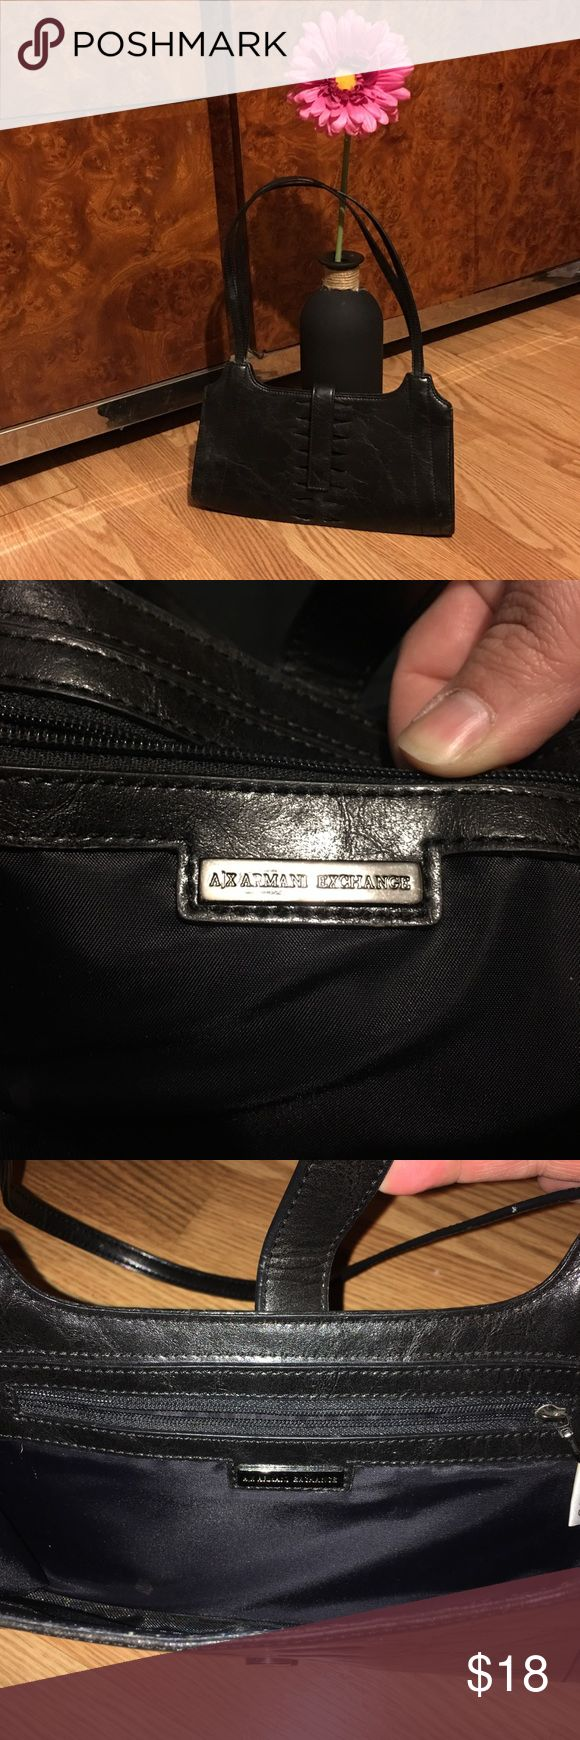 Armani Exchange Purse Small Armani Exchange purse 11' long, in good condition, has a few white spots on the back and a spot on the inside of purse as shown in pictures A/X Armani Exchange Bags Shoulder Bags